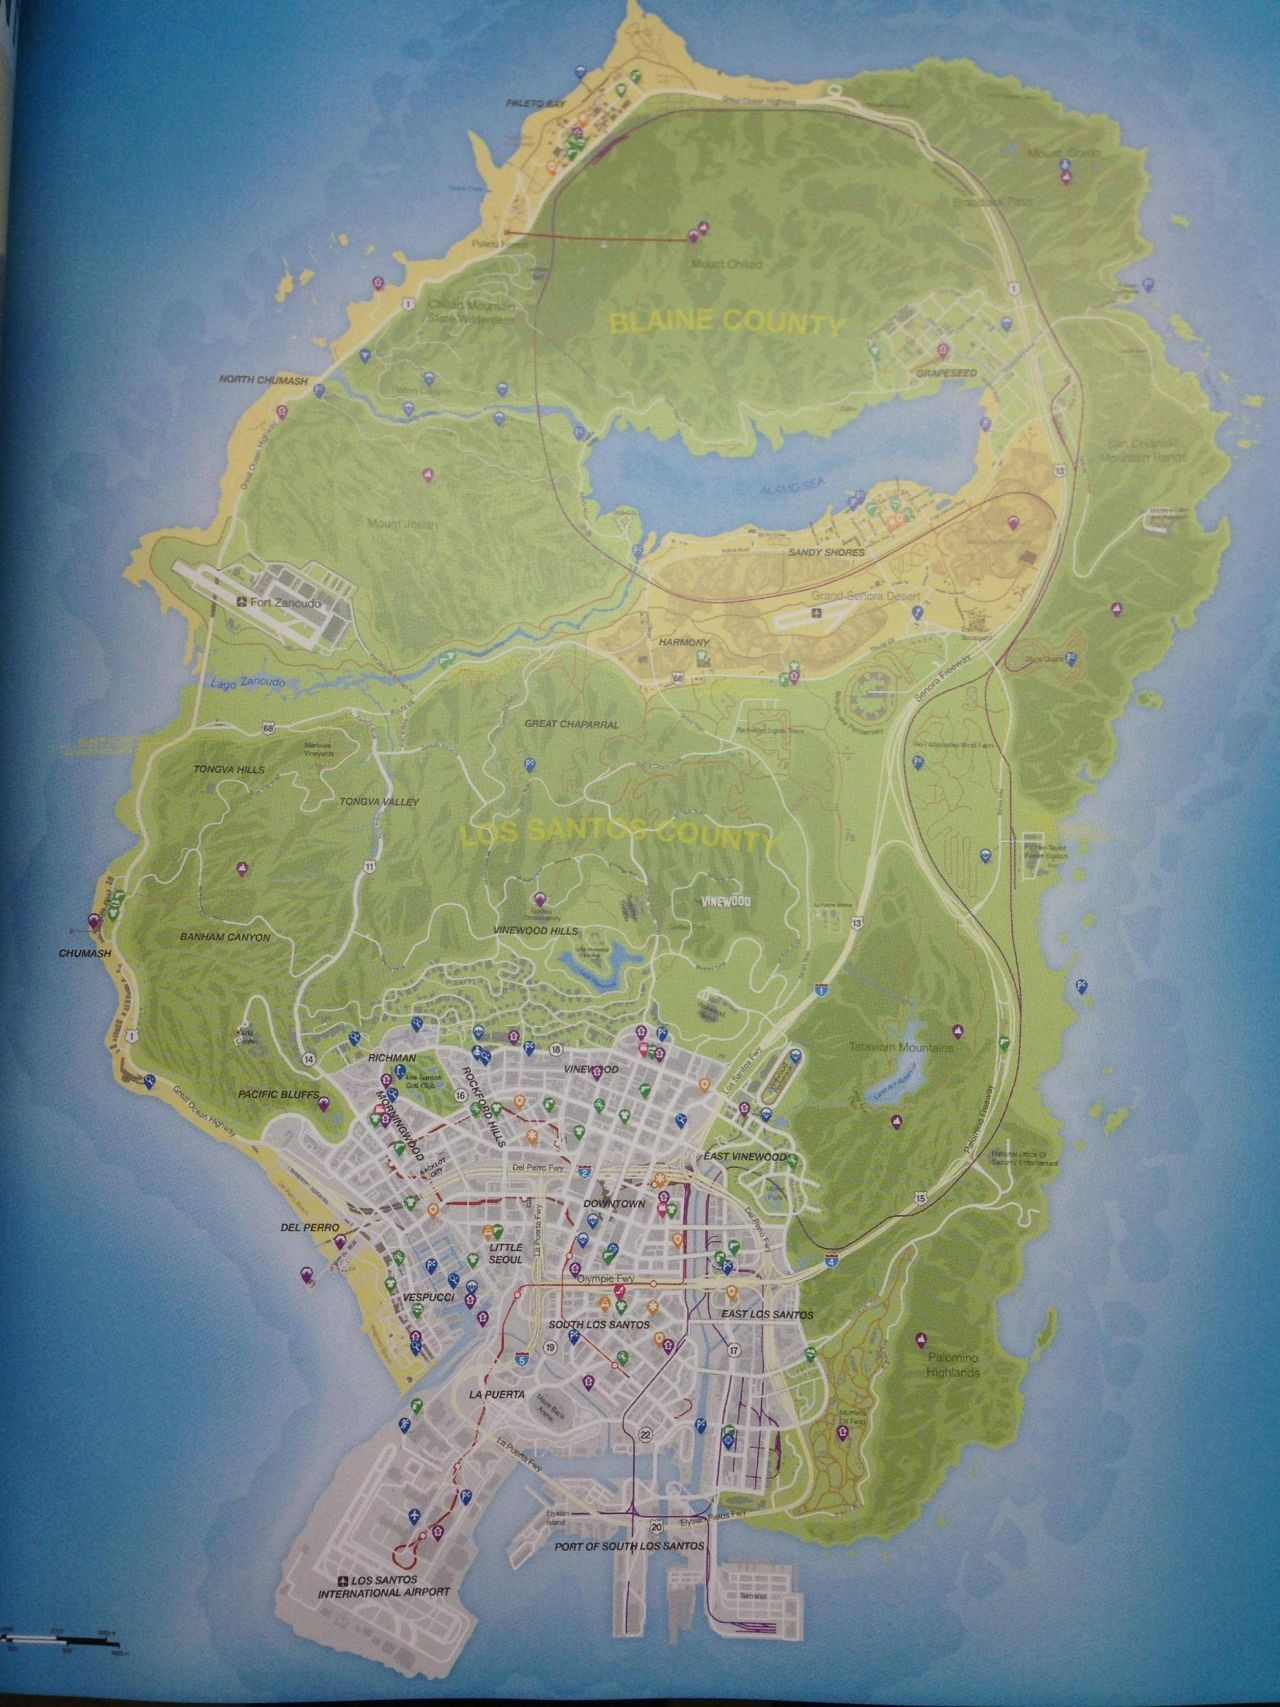 Gta 5 map locations – points of interest